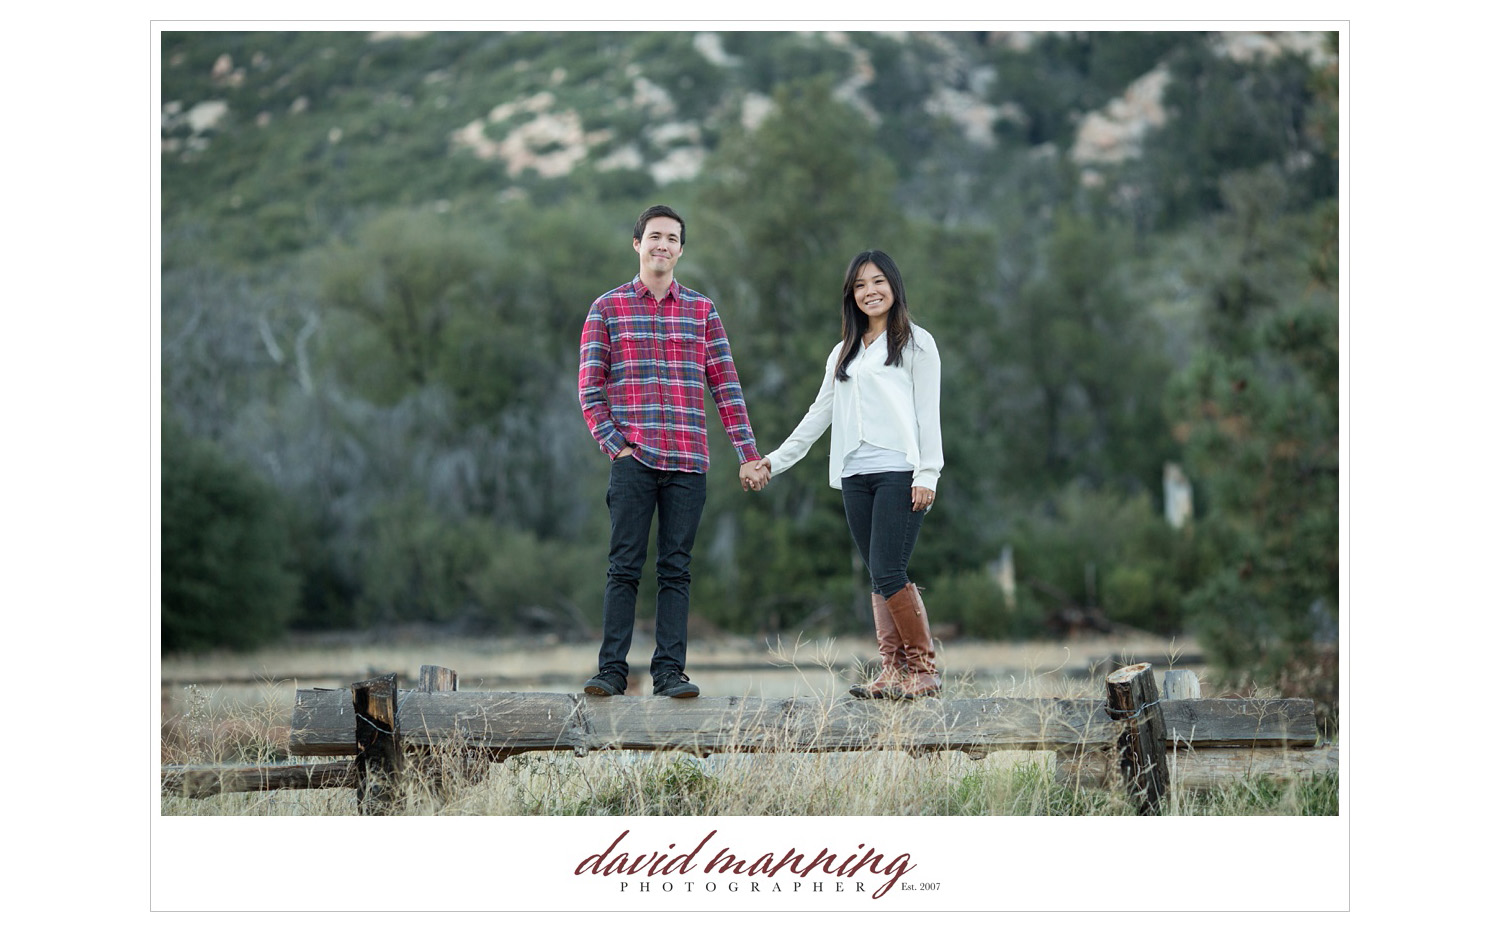 Del-Mar-Ramona-Julian-Engagement-Photos-David-Manning-Photographers-0019.jpg